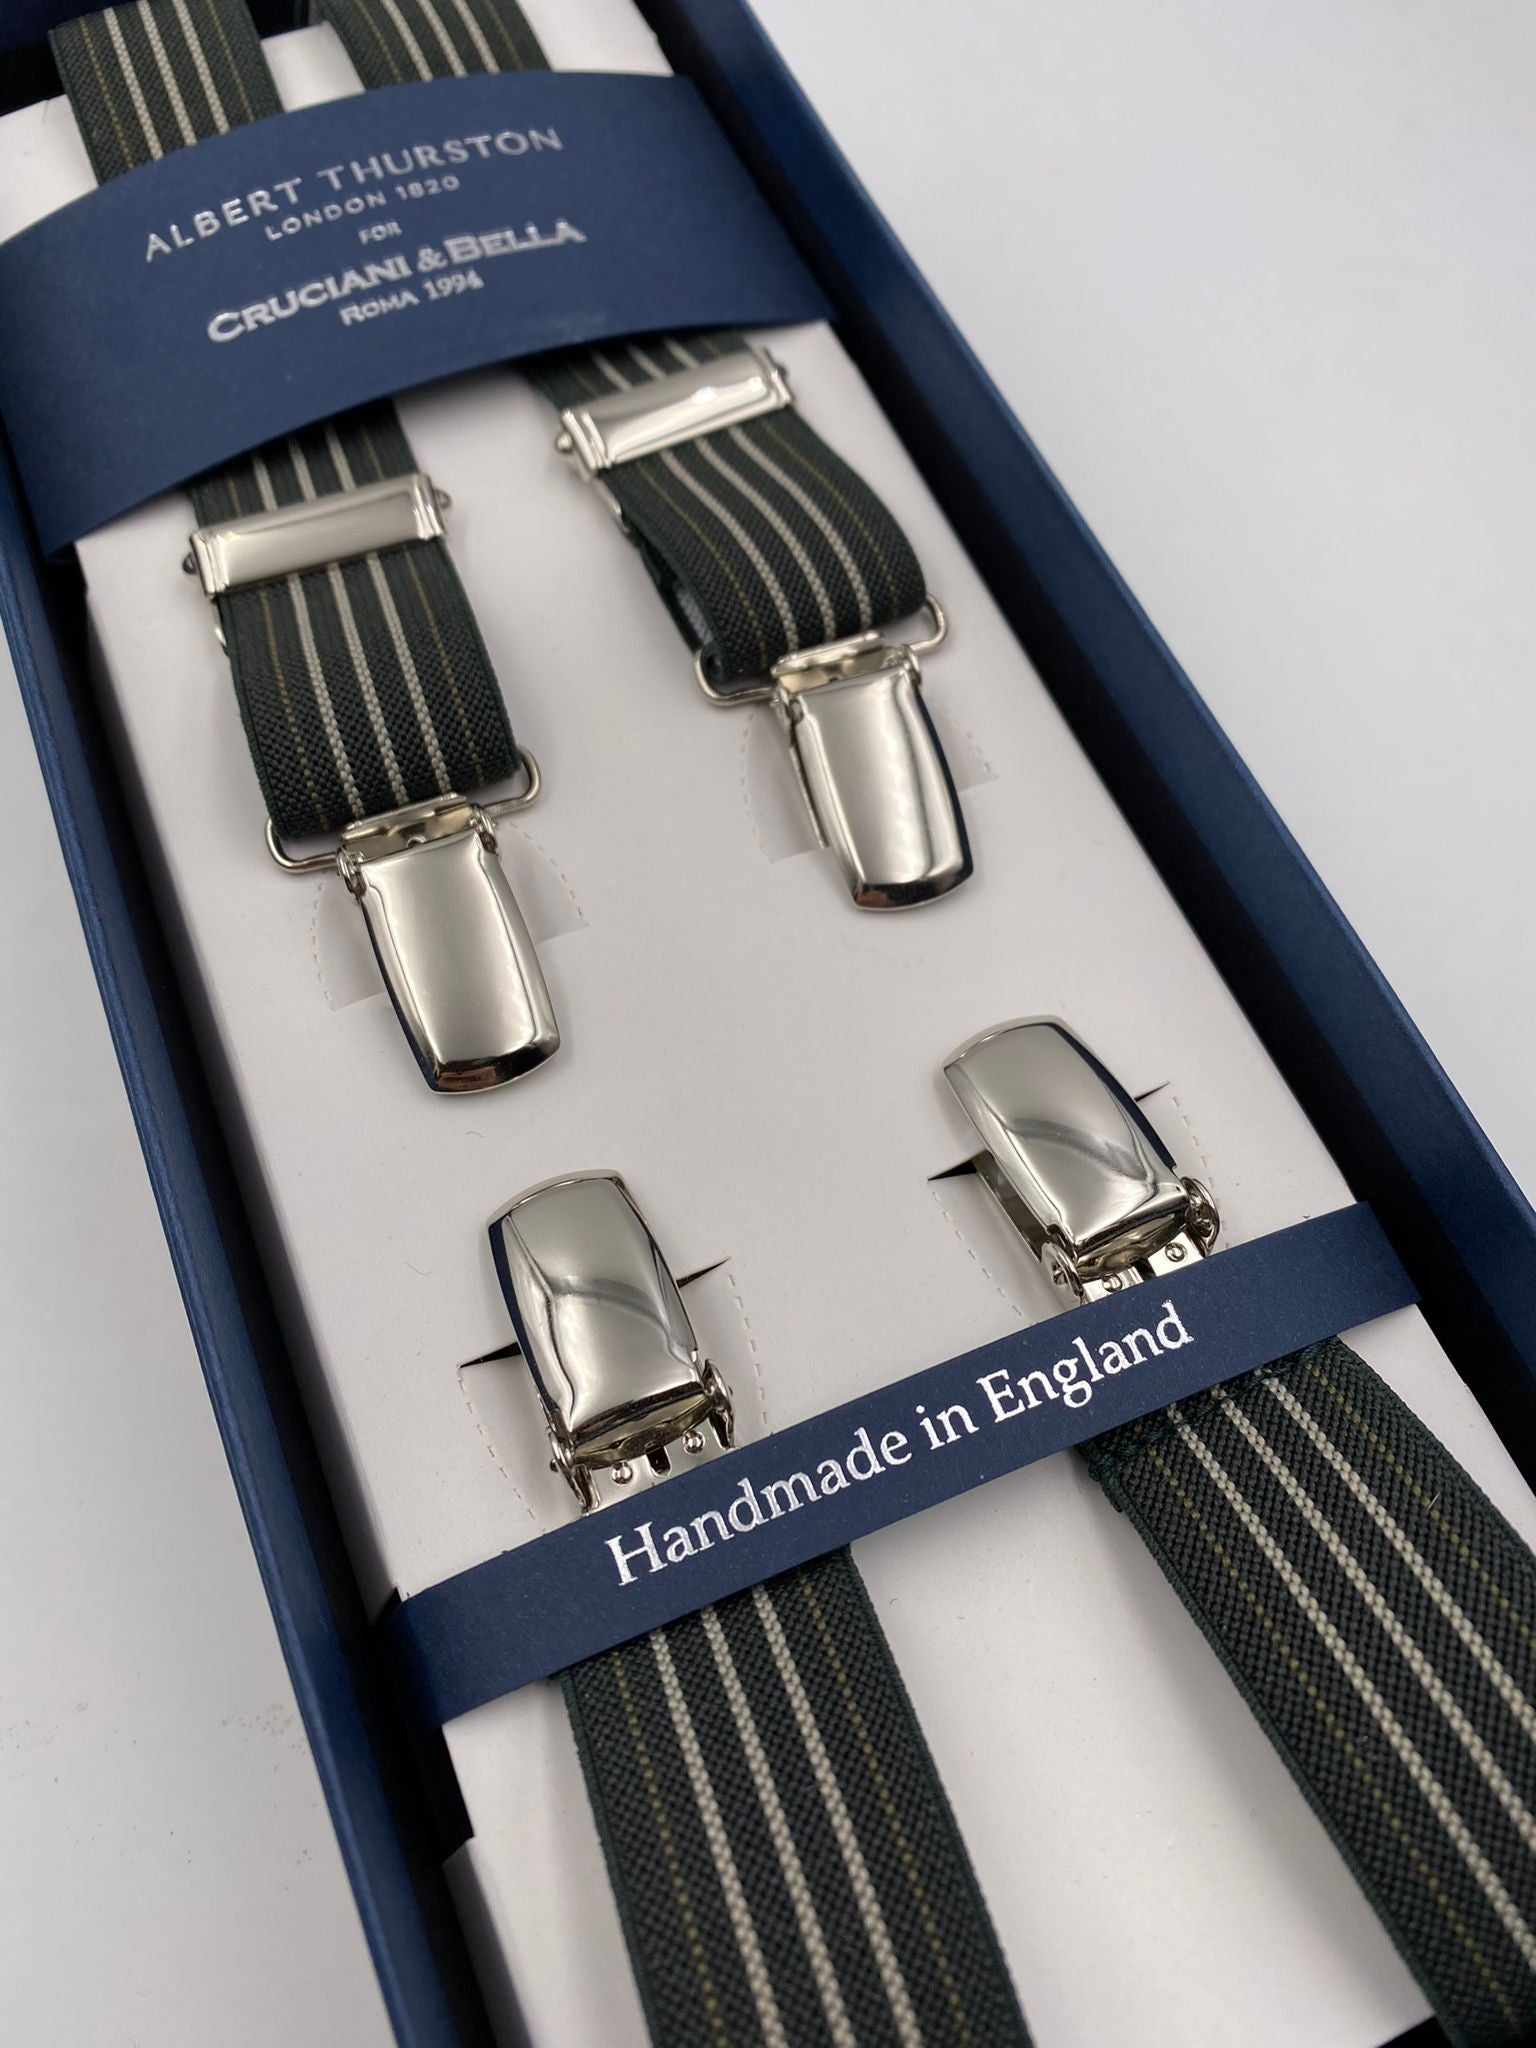 Albert Thurston for Cruciani & Bella Made in England Clip on Adjustable Sizing 25 mm elastic braces Green and Beige Stripes X-Shaped Nickel Fittings Size: L #4844